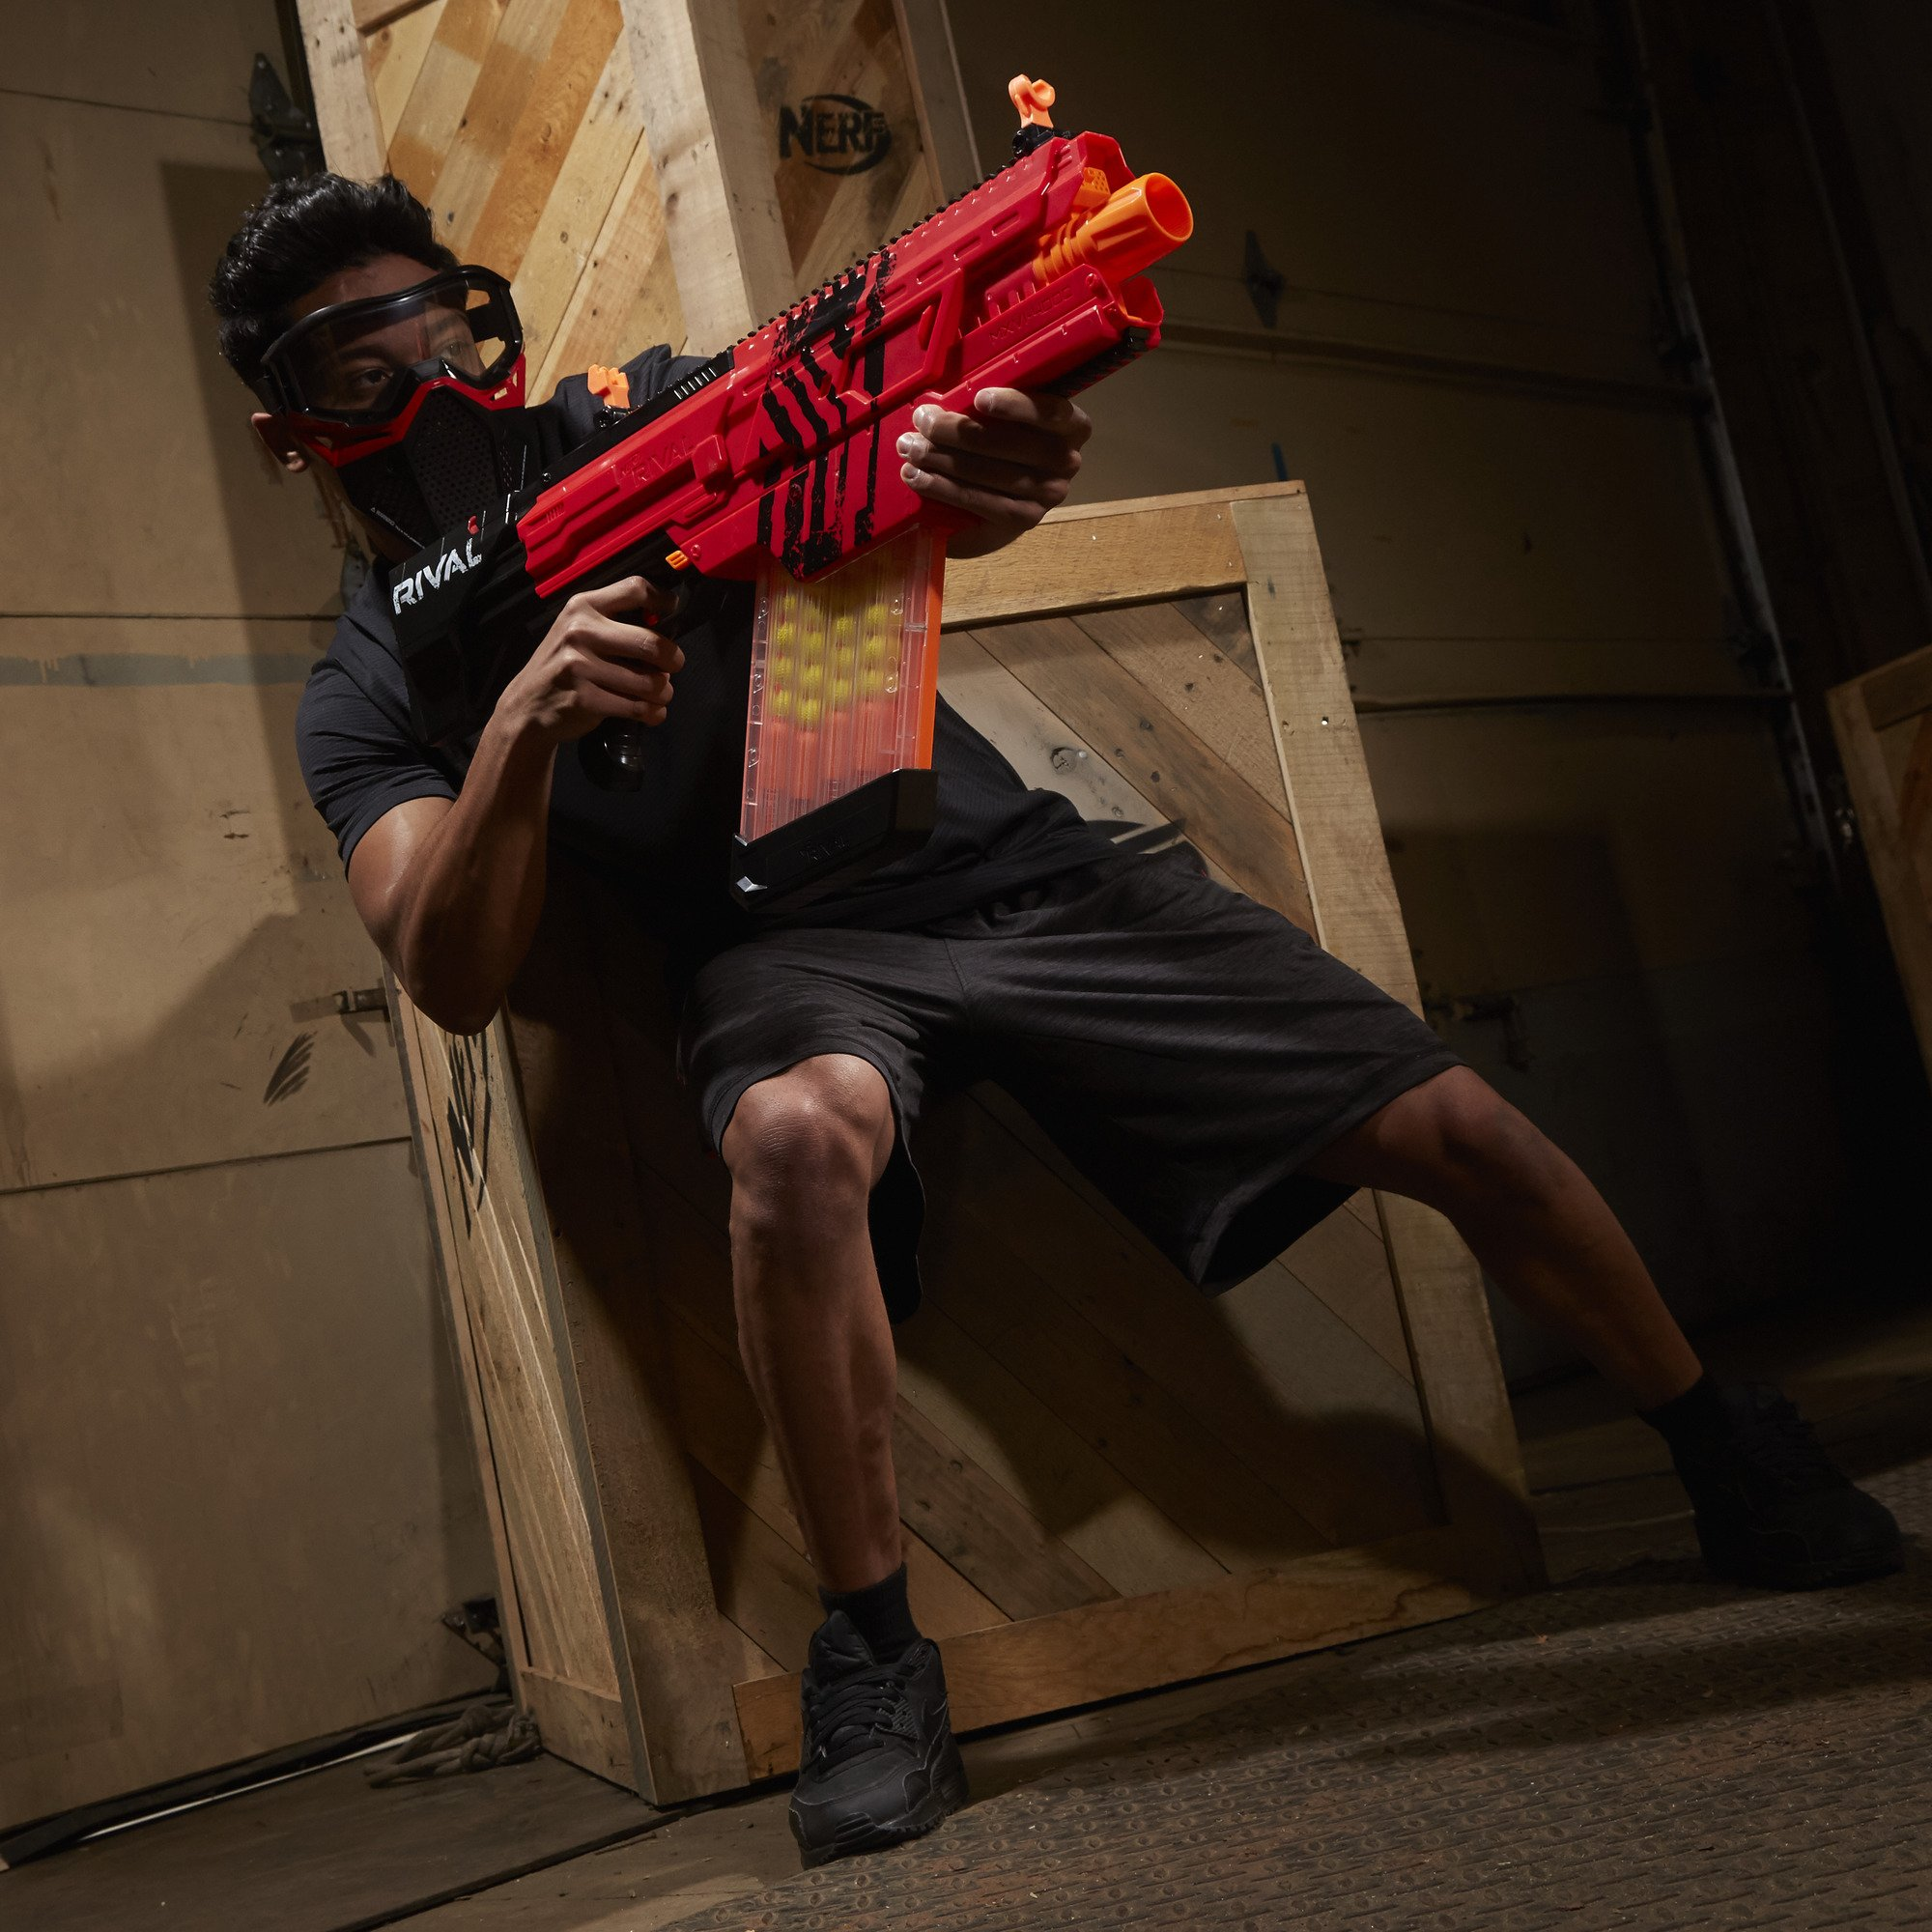 Nerf Rival Khaos MXVI-4000 Blaster (Red) by NERF (Image #10)